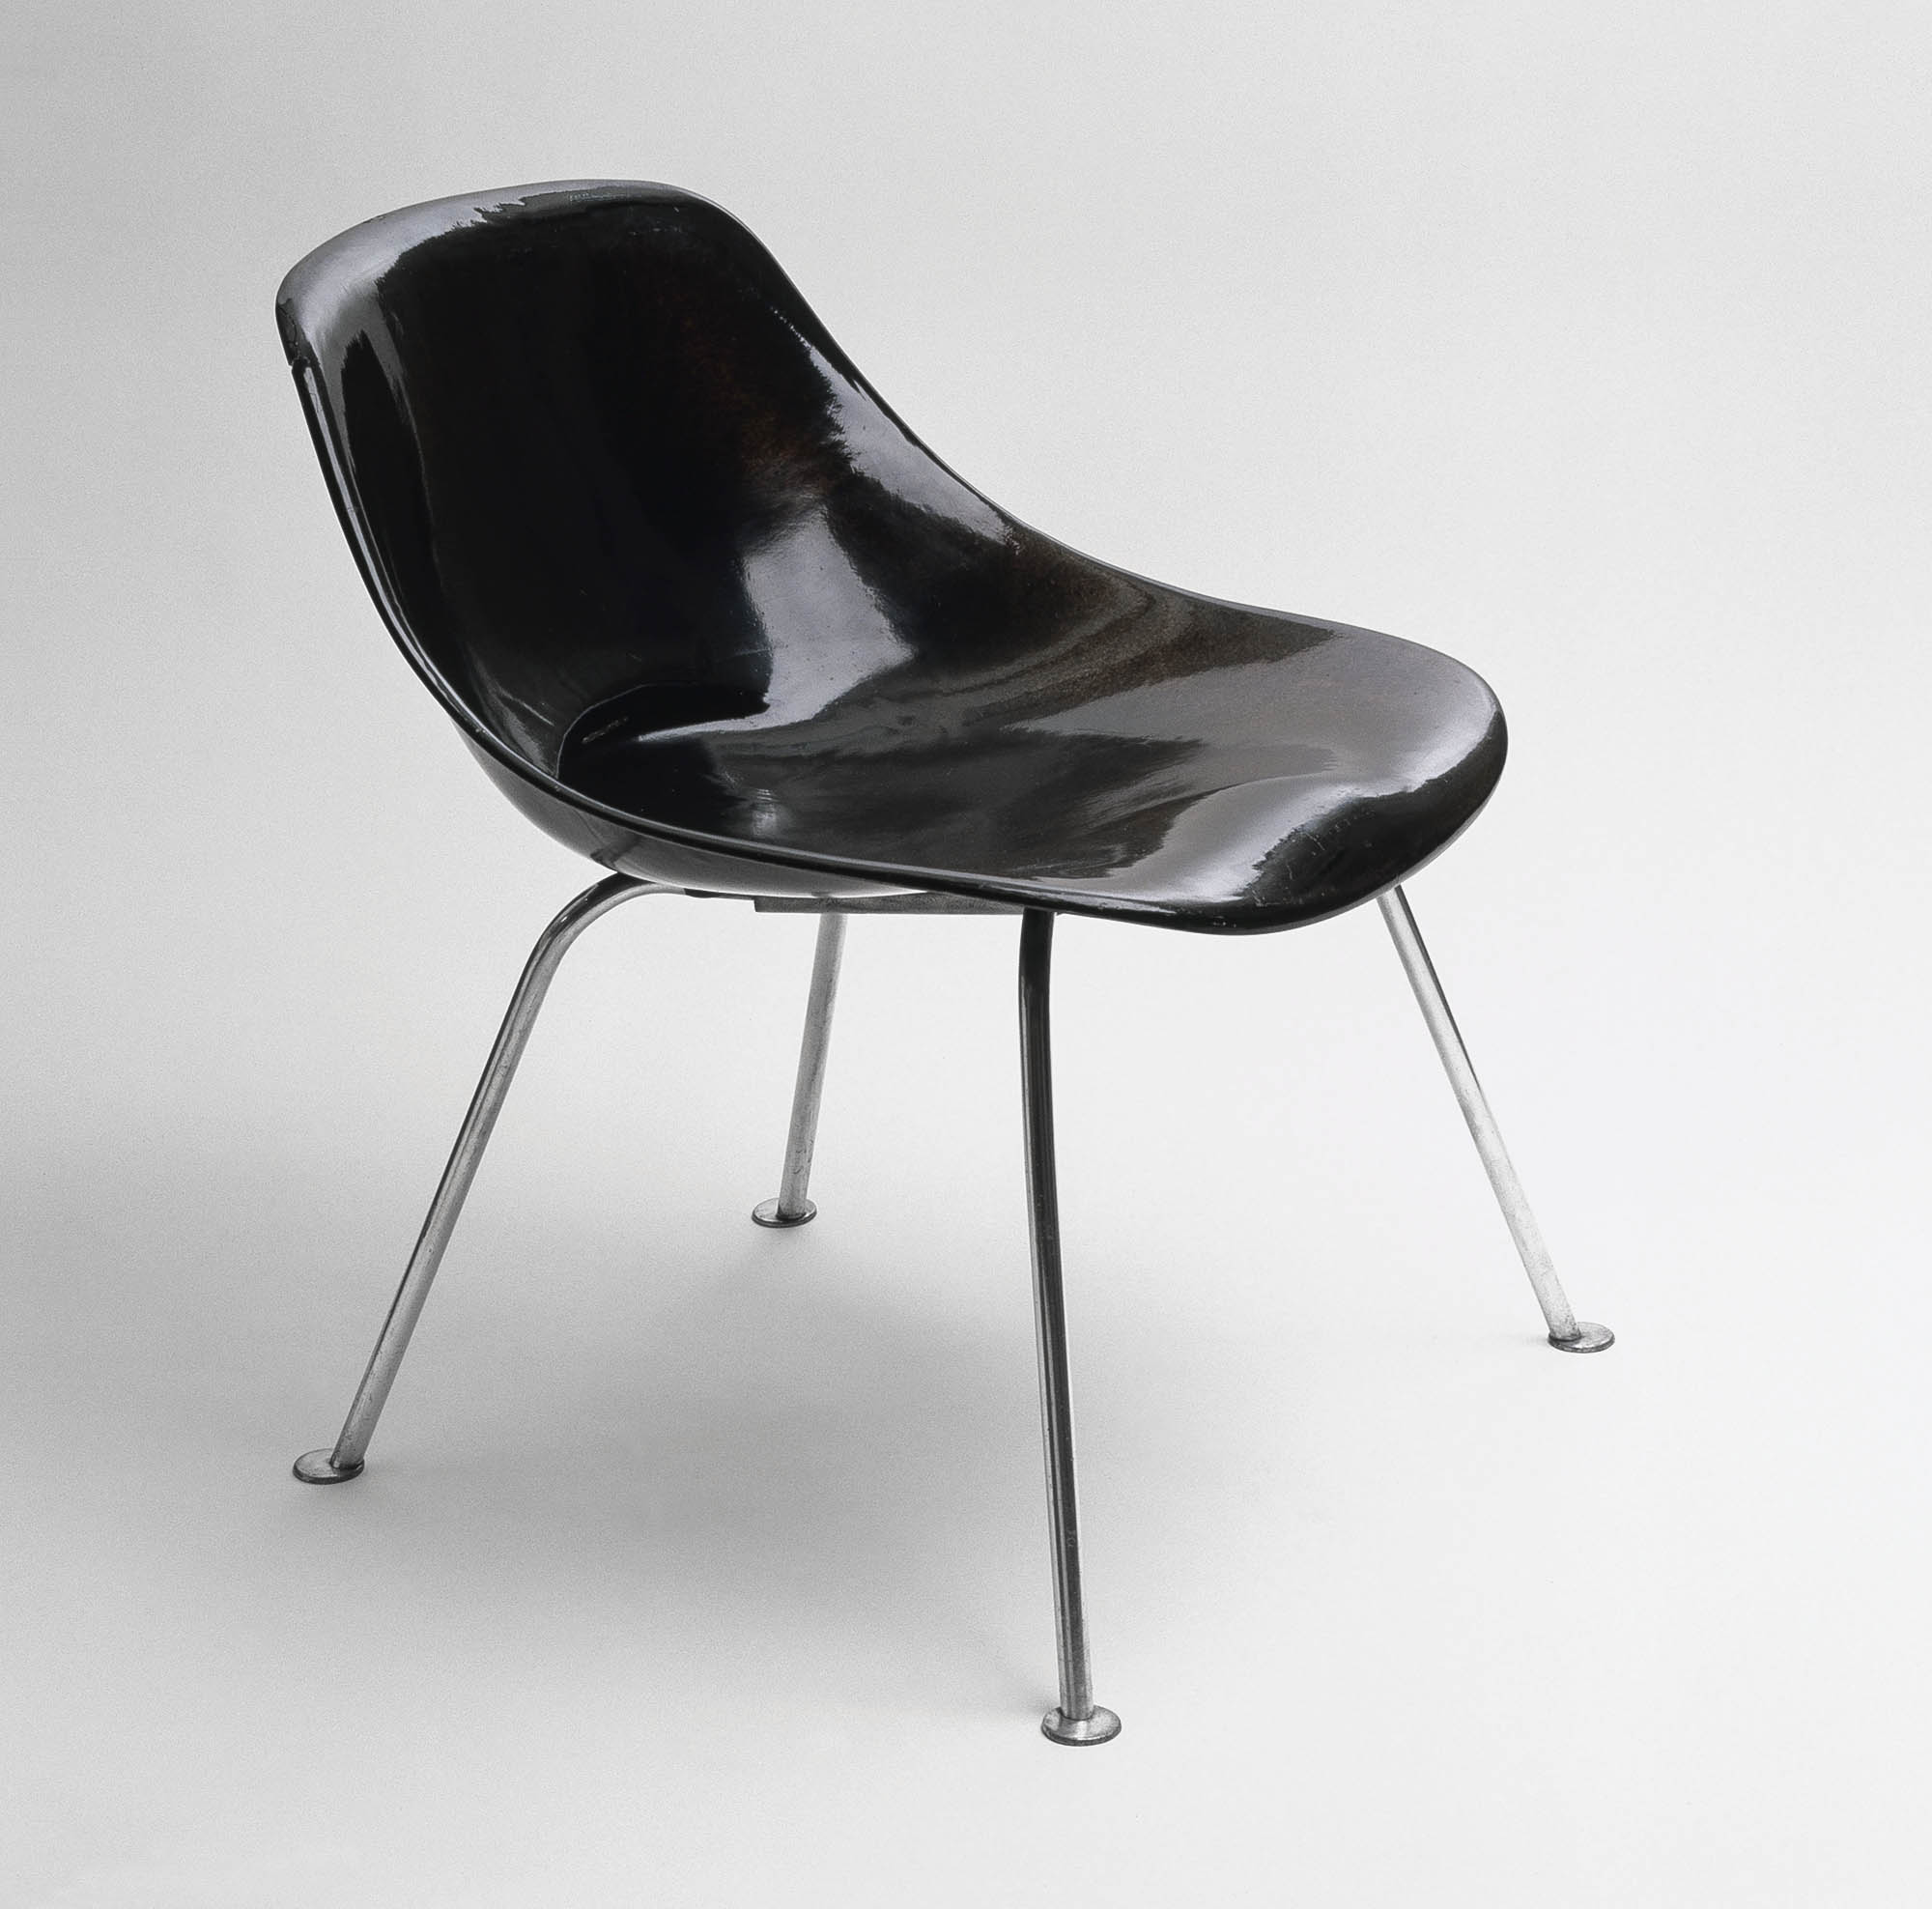 Scobalit Willy Guhl Chair